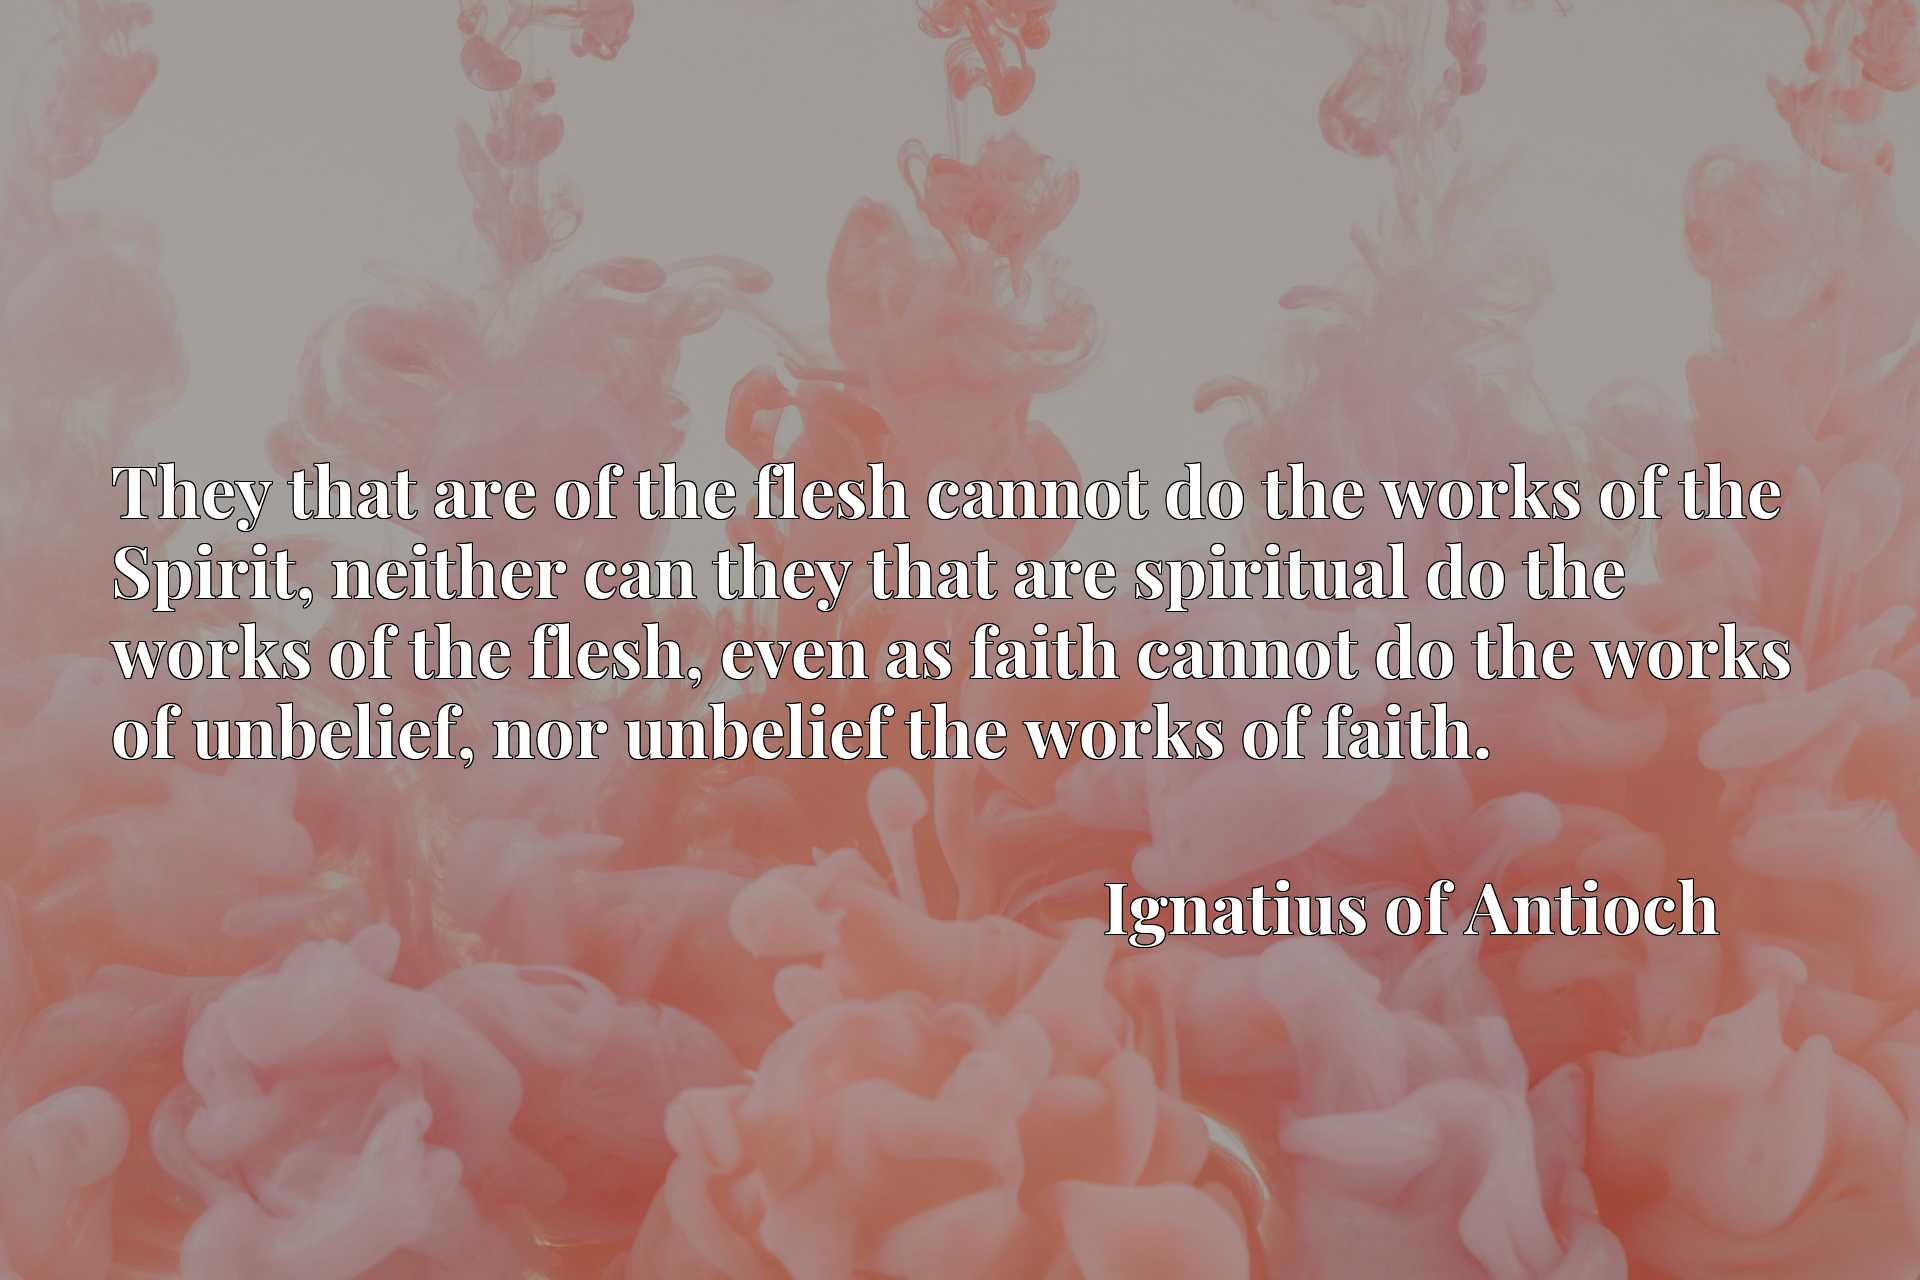 They that are of the flesh cannot do the works of the Spirit, neither can they that are spiritual do the works of the flesh, even as faith cannot do the works of unbelief, nor unbelief the works of faith.